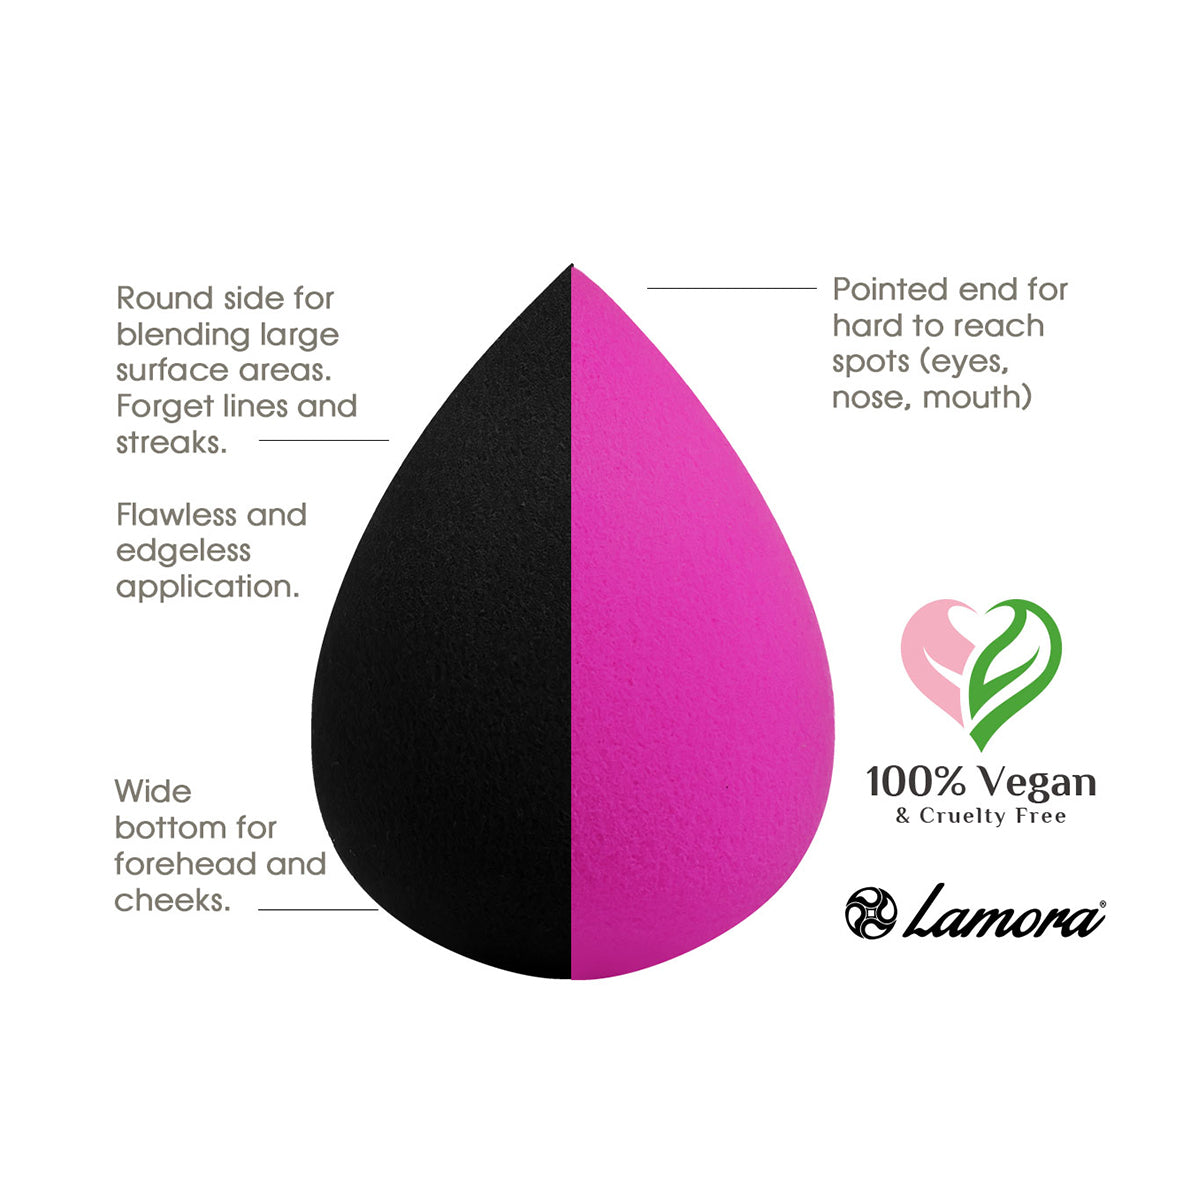 What makes a good traditional makeup blending sponge from Lamora Beauty